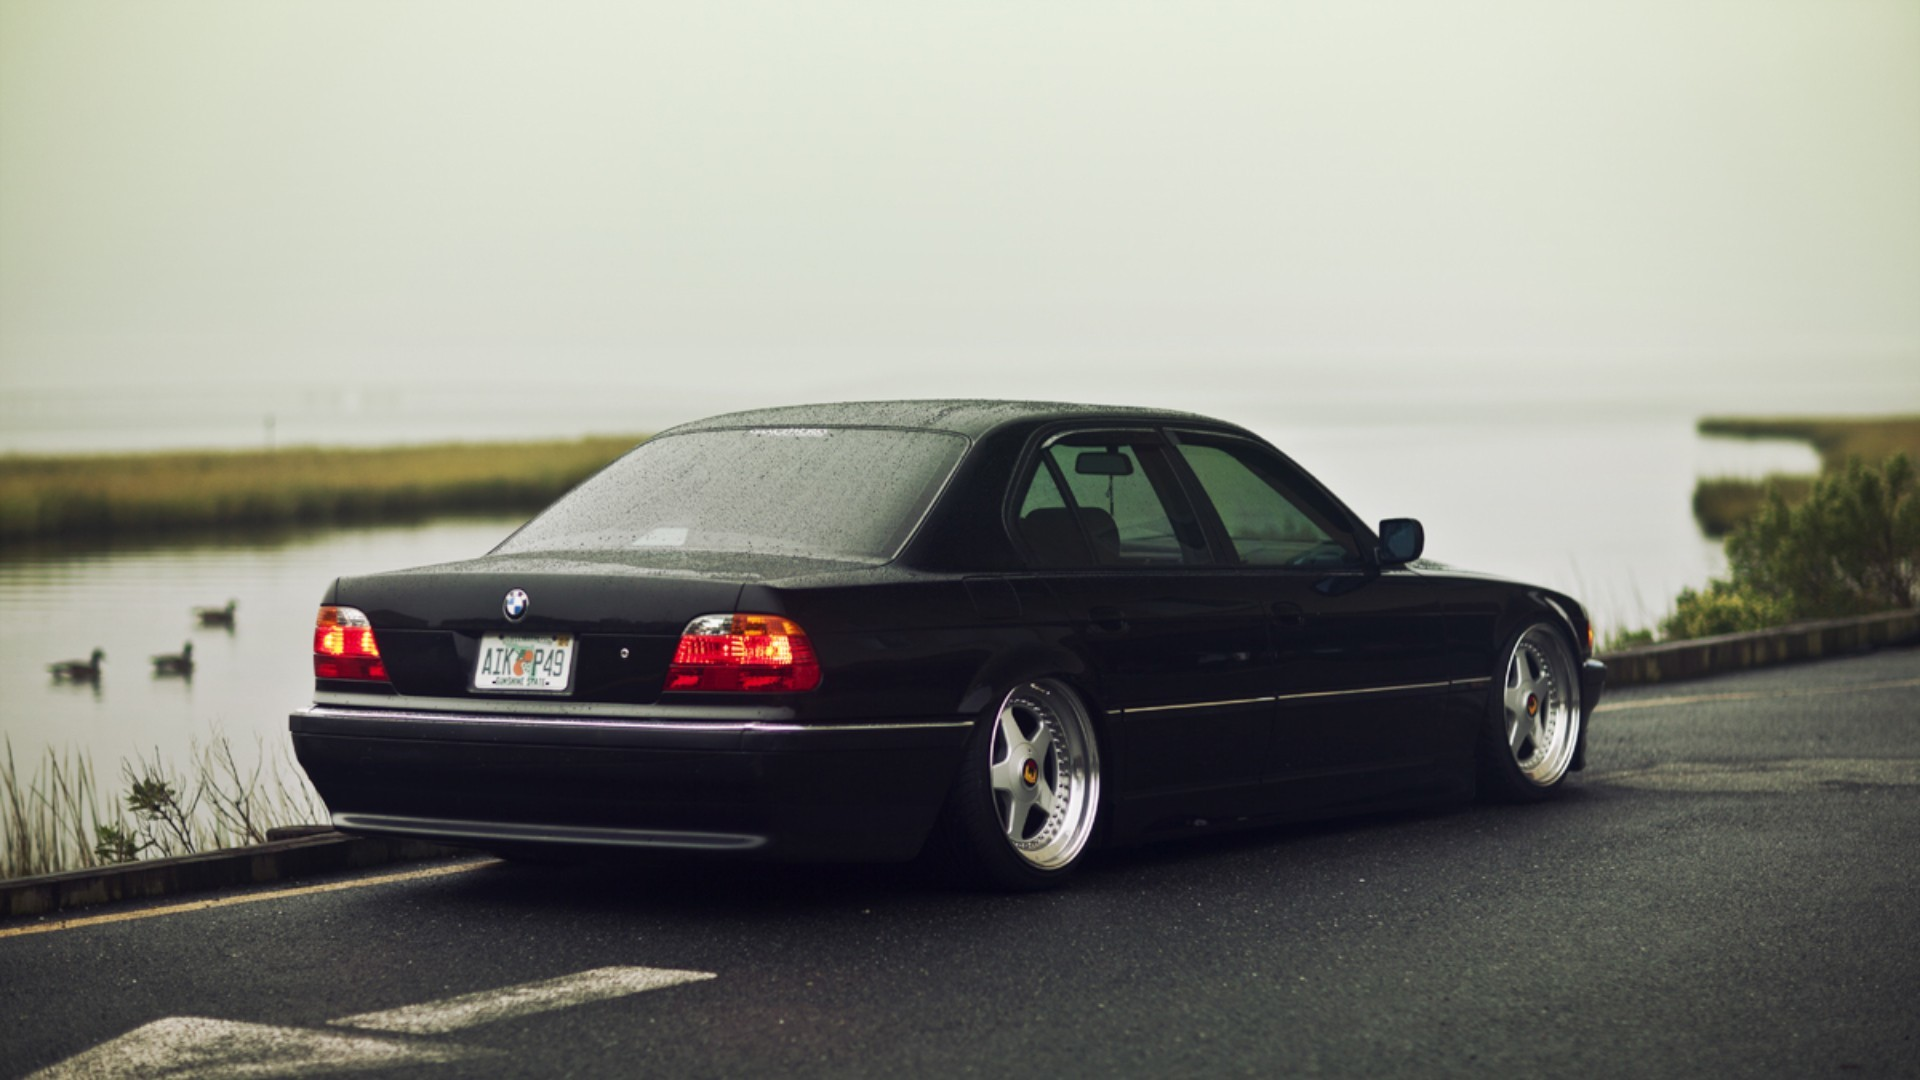 Res: 1920x1080, stance